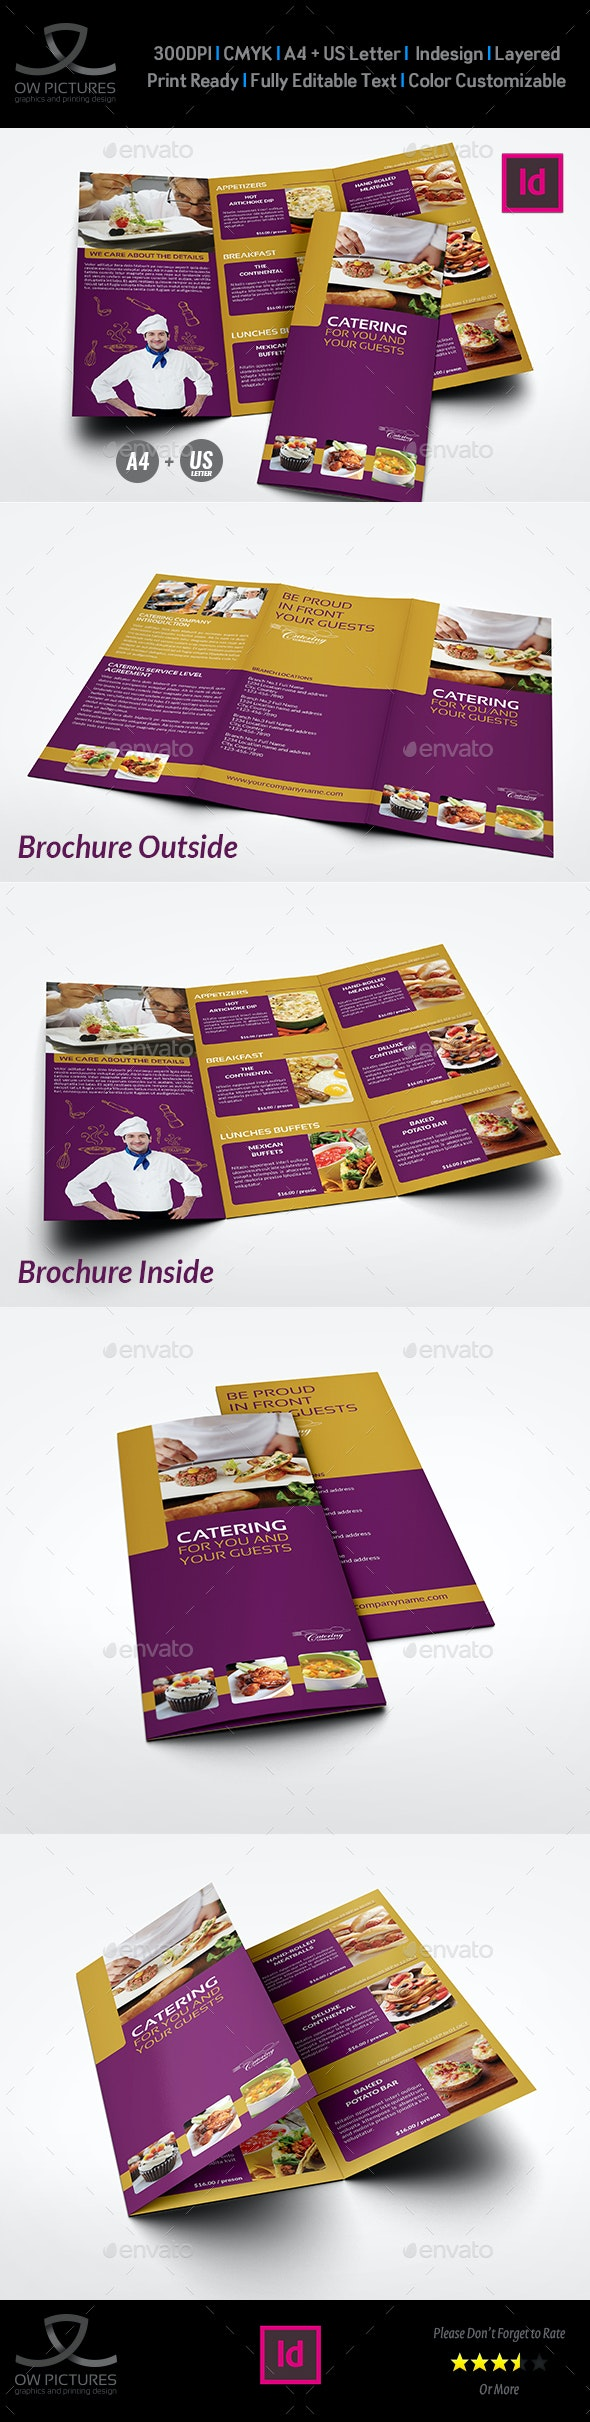 Catering Tri-Fold Brochure Template - Brochures Print Templates